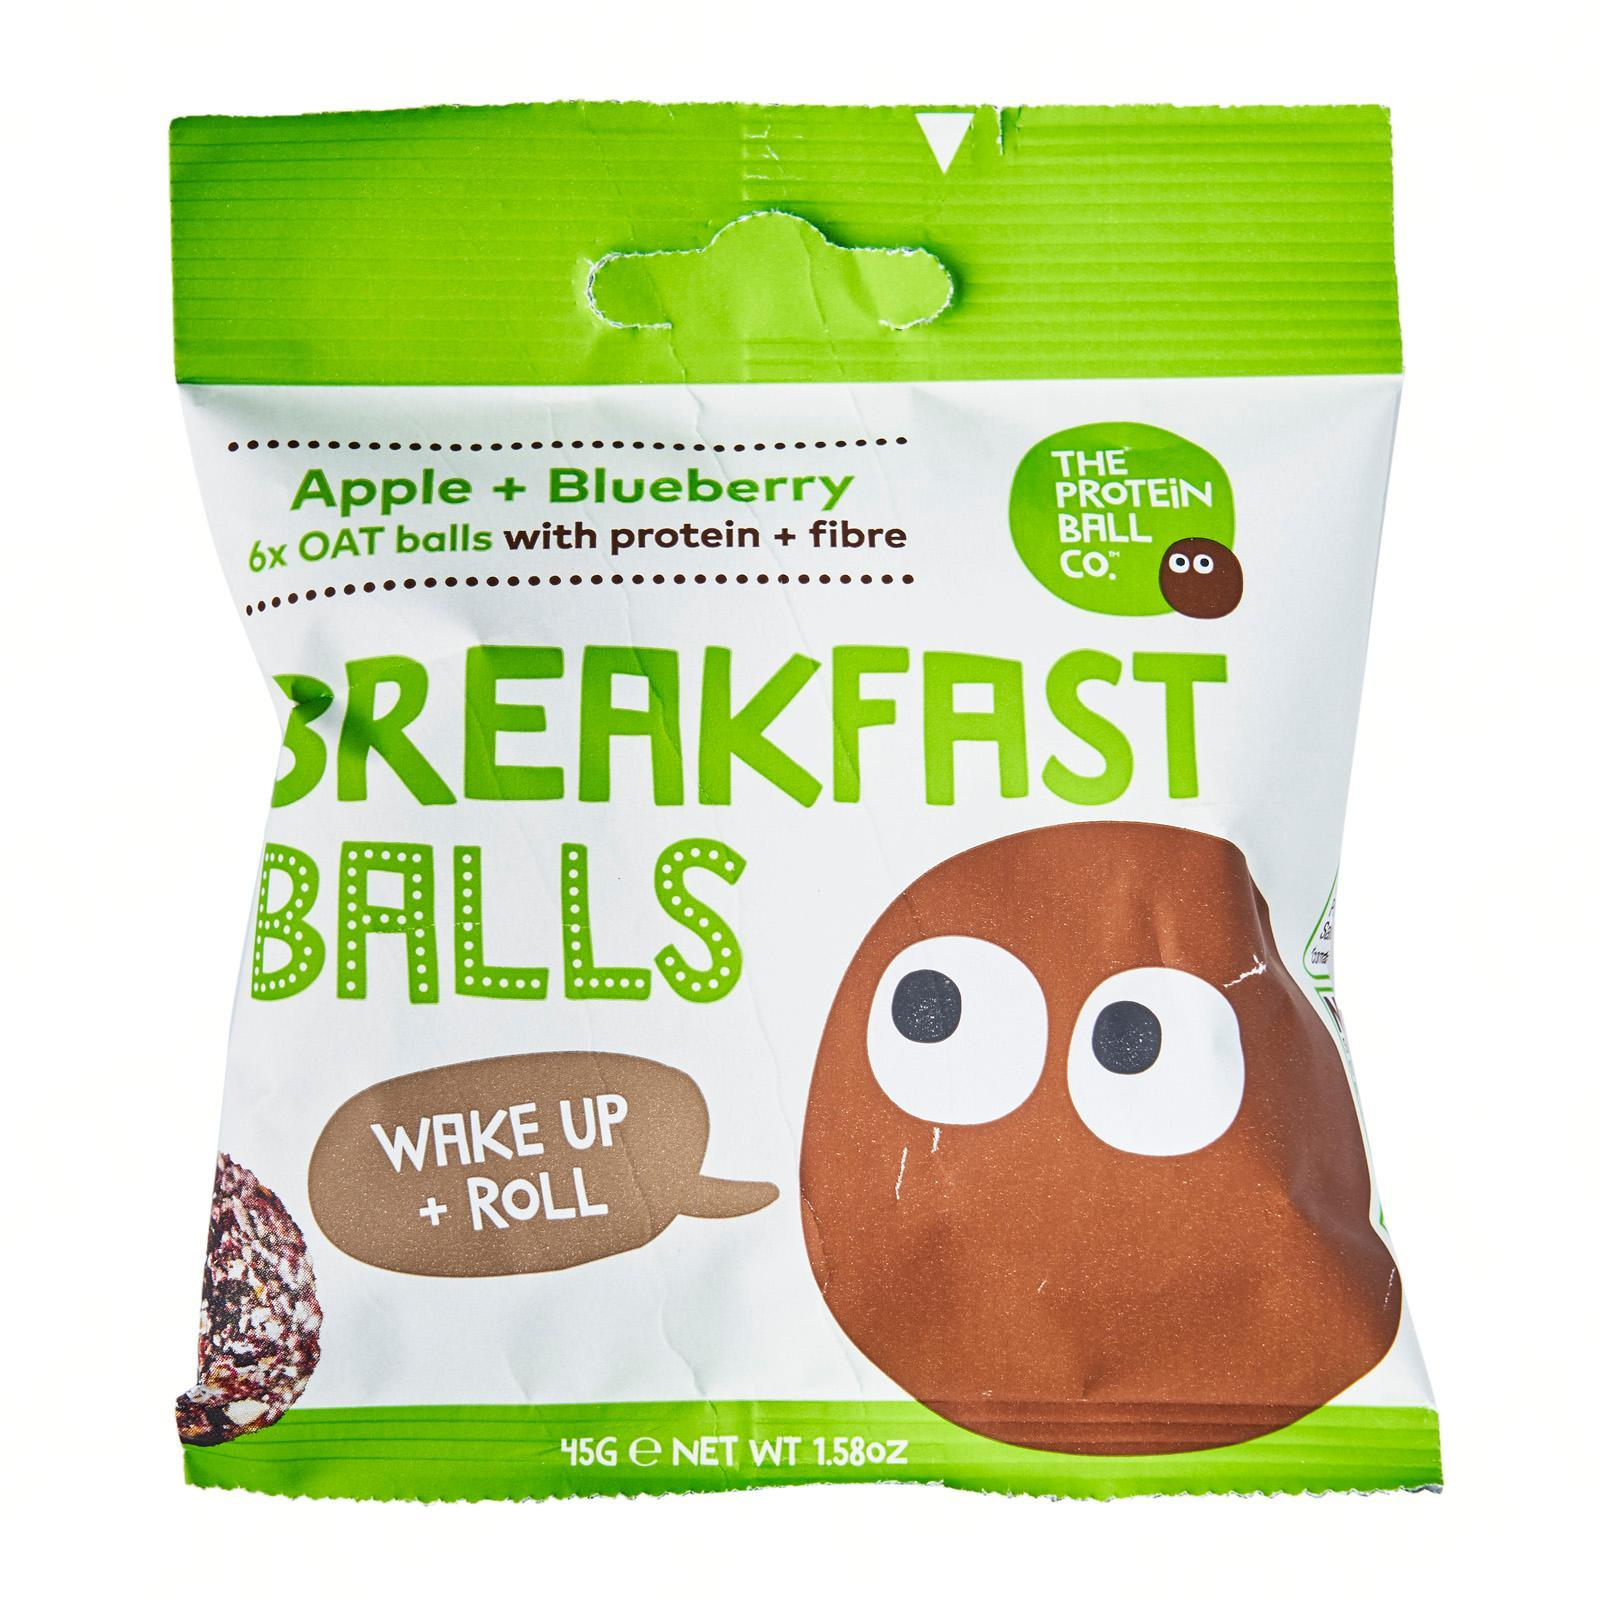 The Protein Ball Co All Natural Apple and Blueberry Breakfast Balls with Oats - Vegan